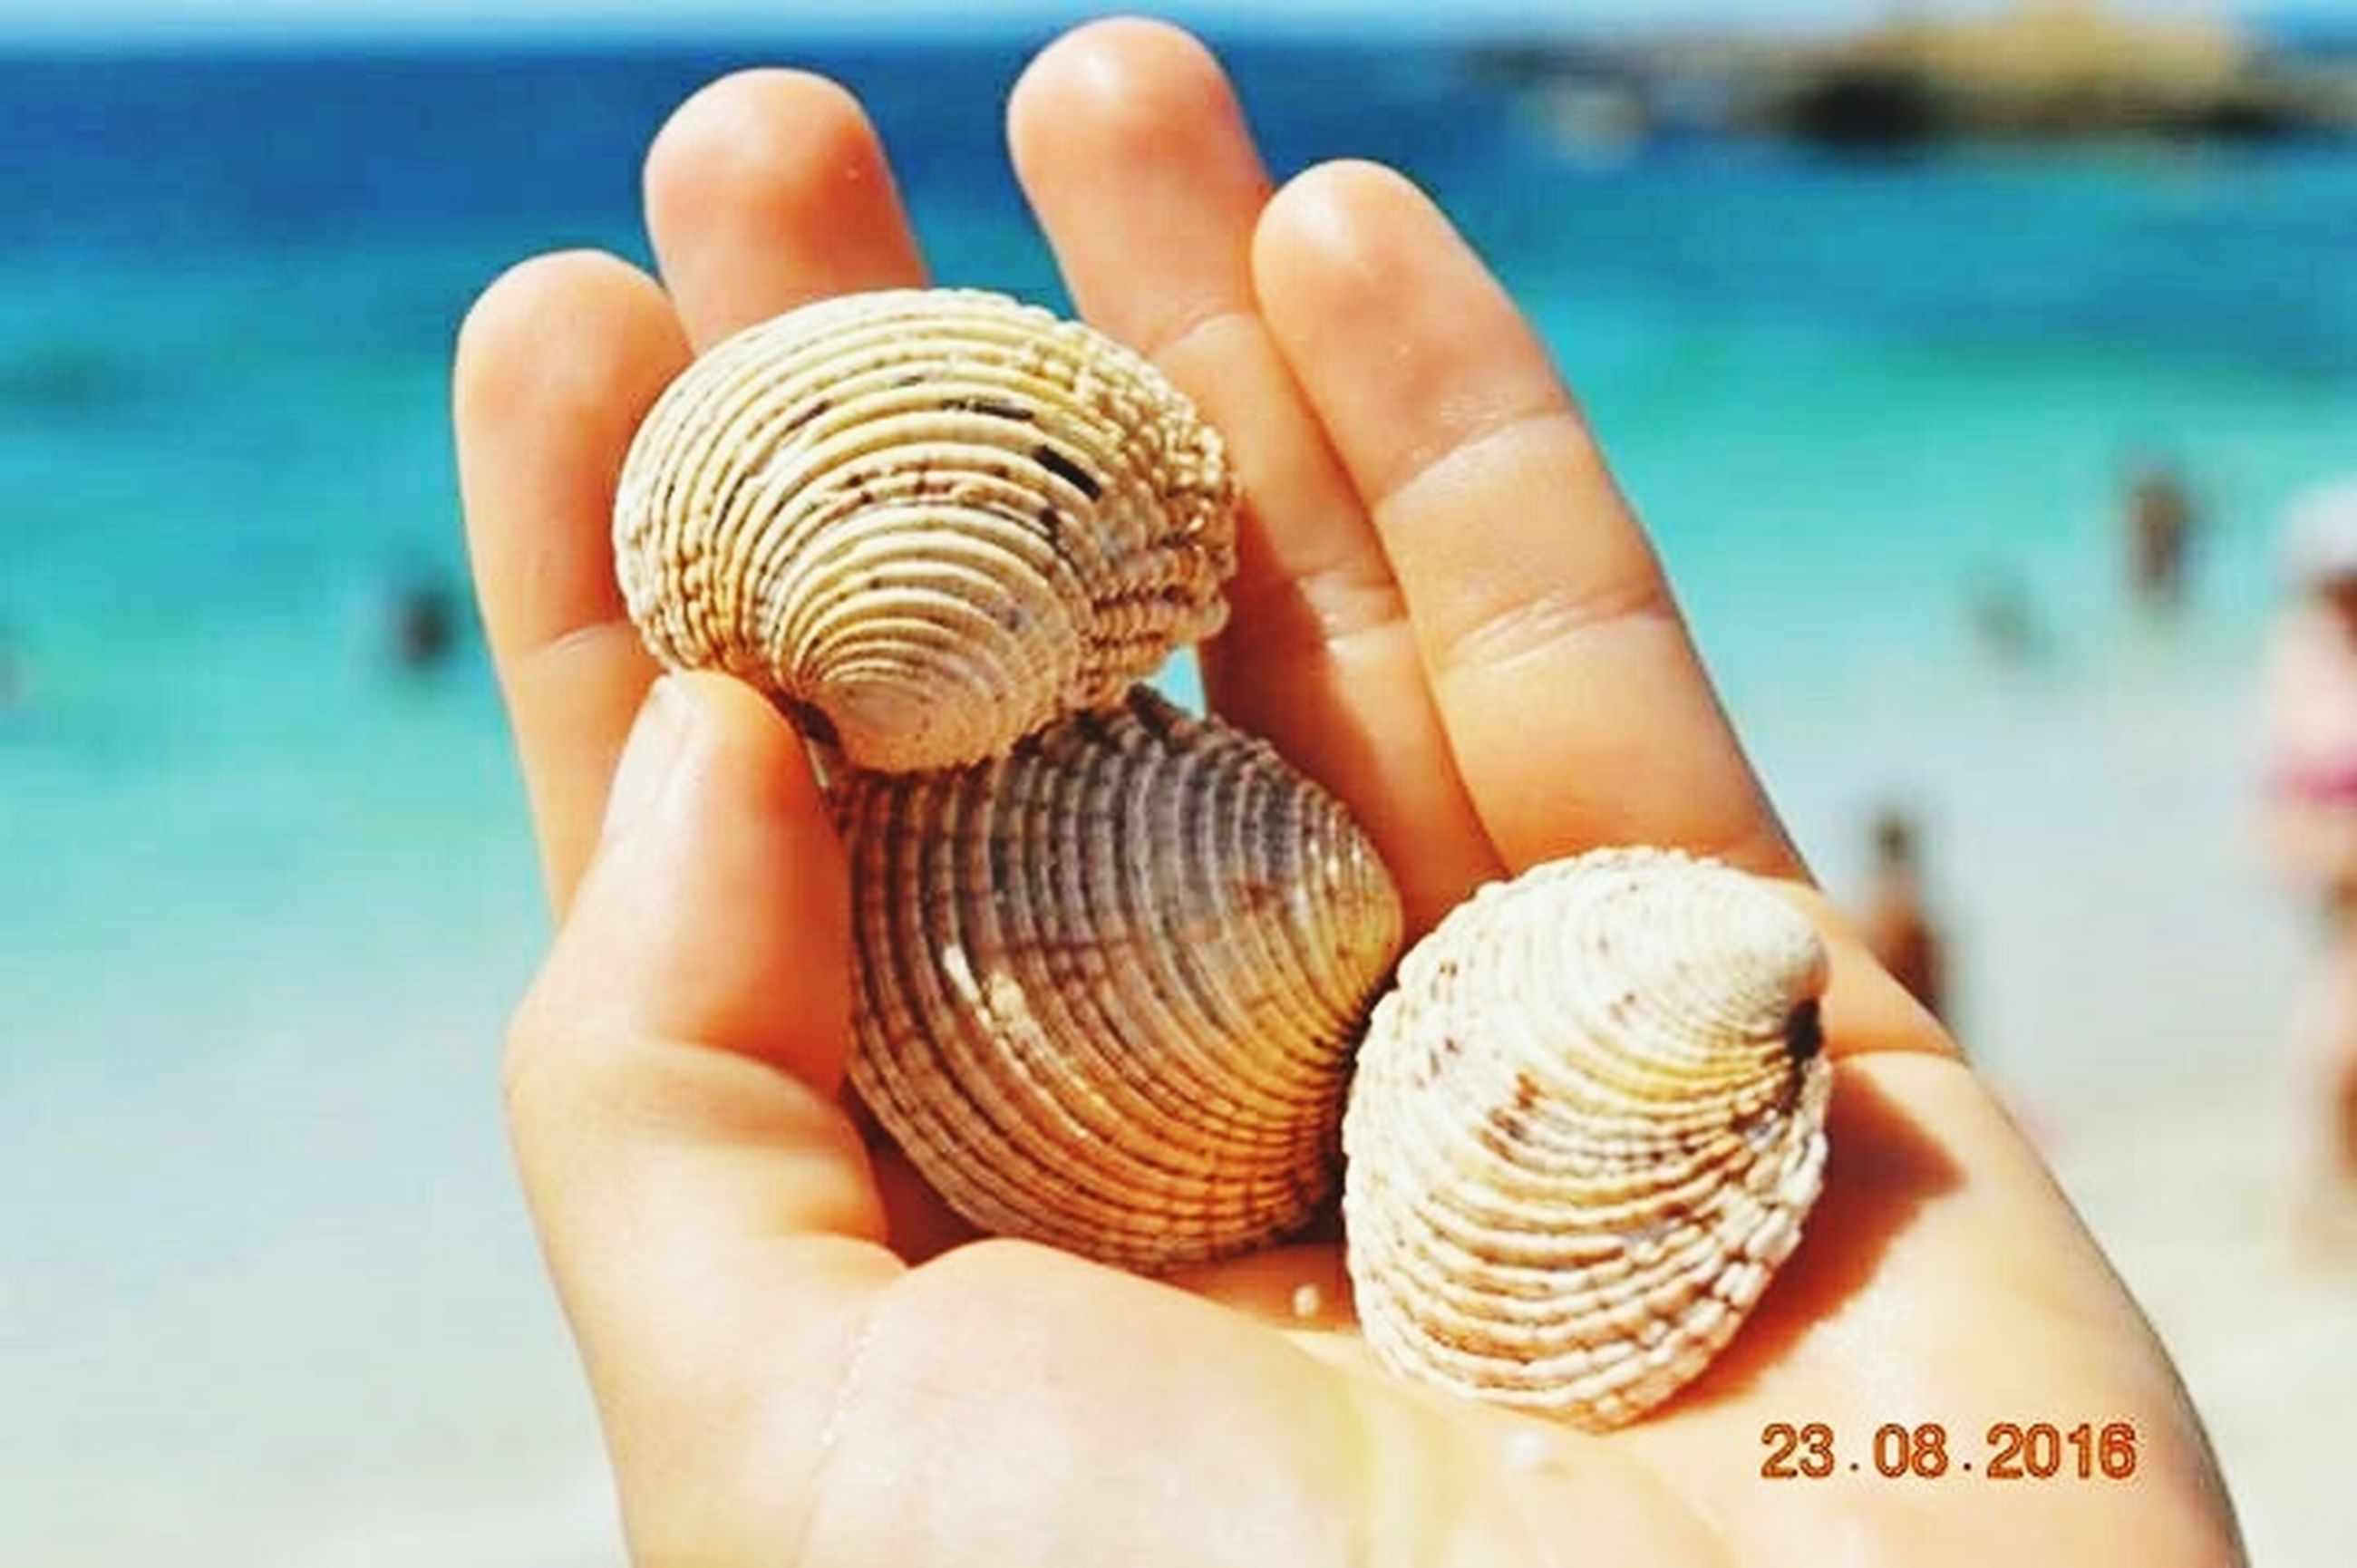 human body part, human hand, sea, animal shell, beach, seashell, palm, sand, water, vacations, outdoors, summer, beauty, one person, nature, close-up, people, sea life, adult, one woman only, adults only, only women, hermit crab, day